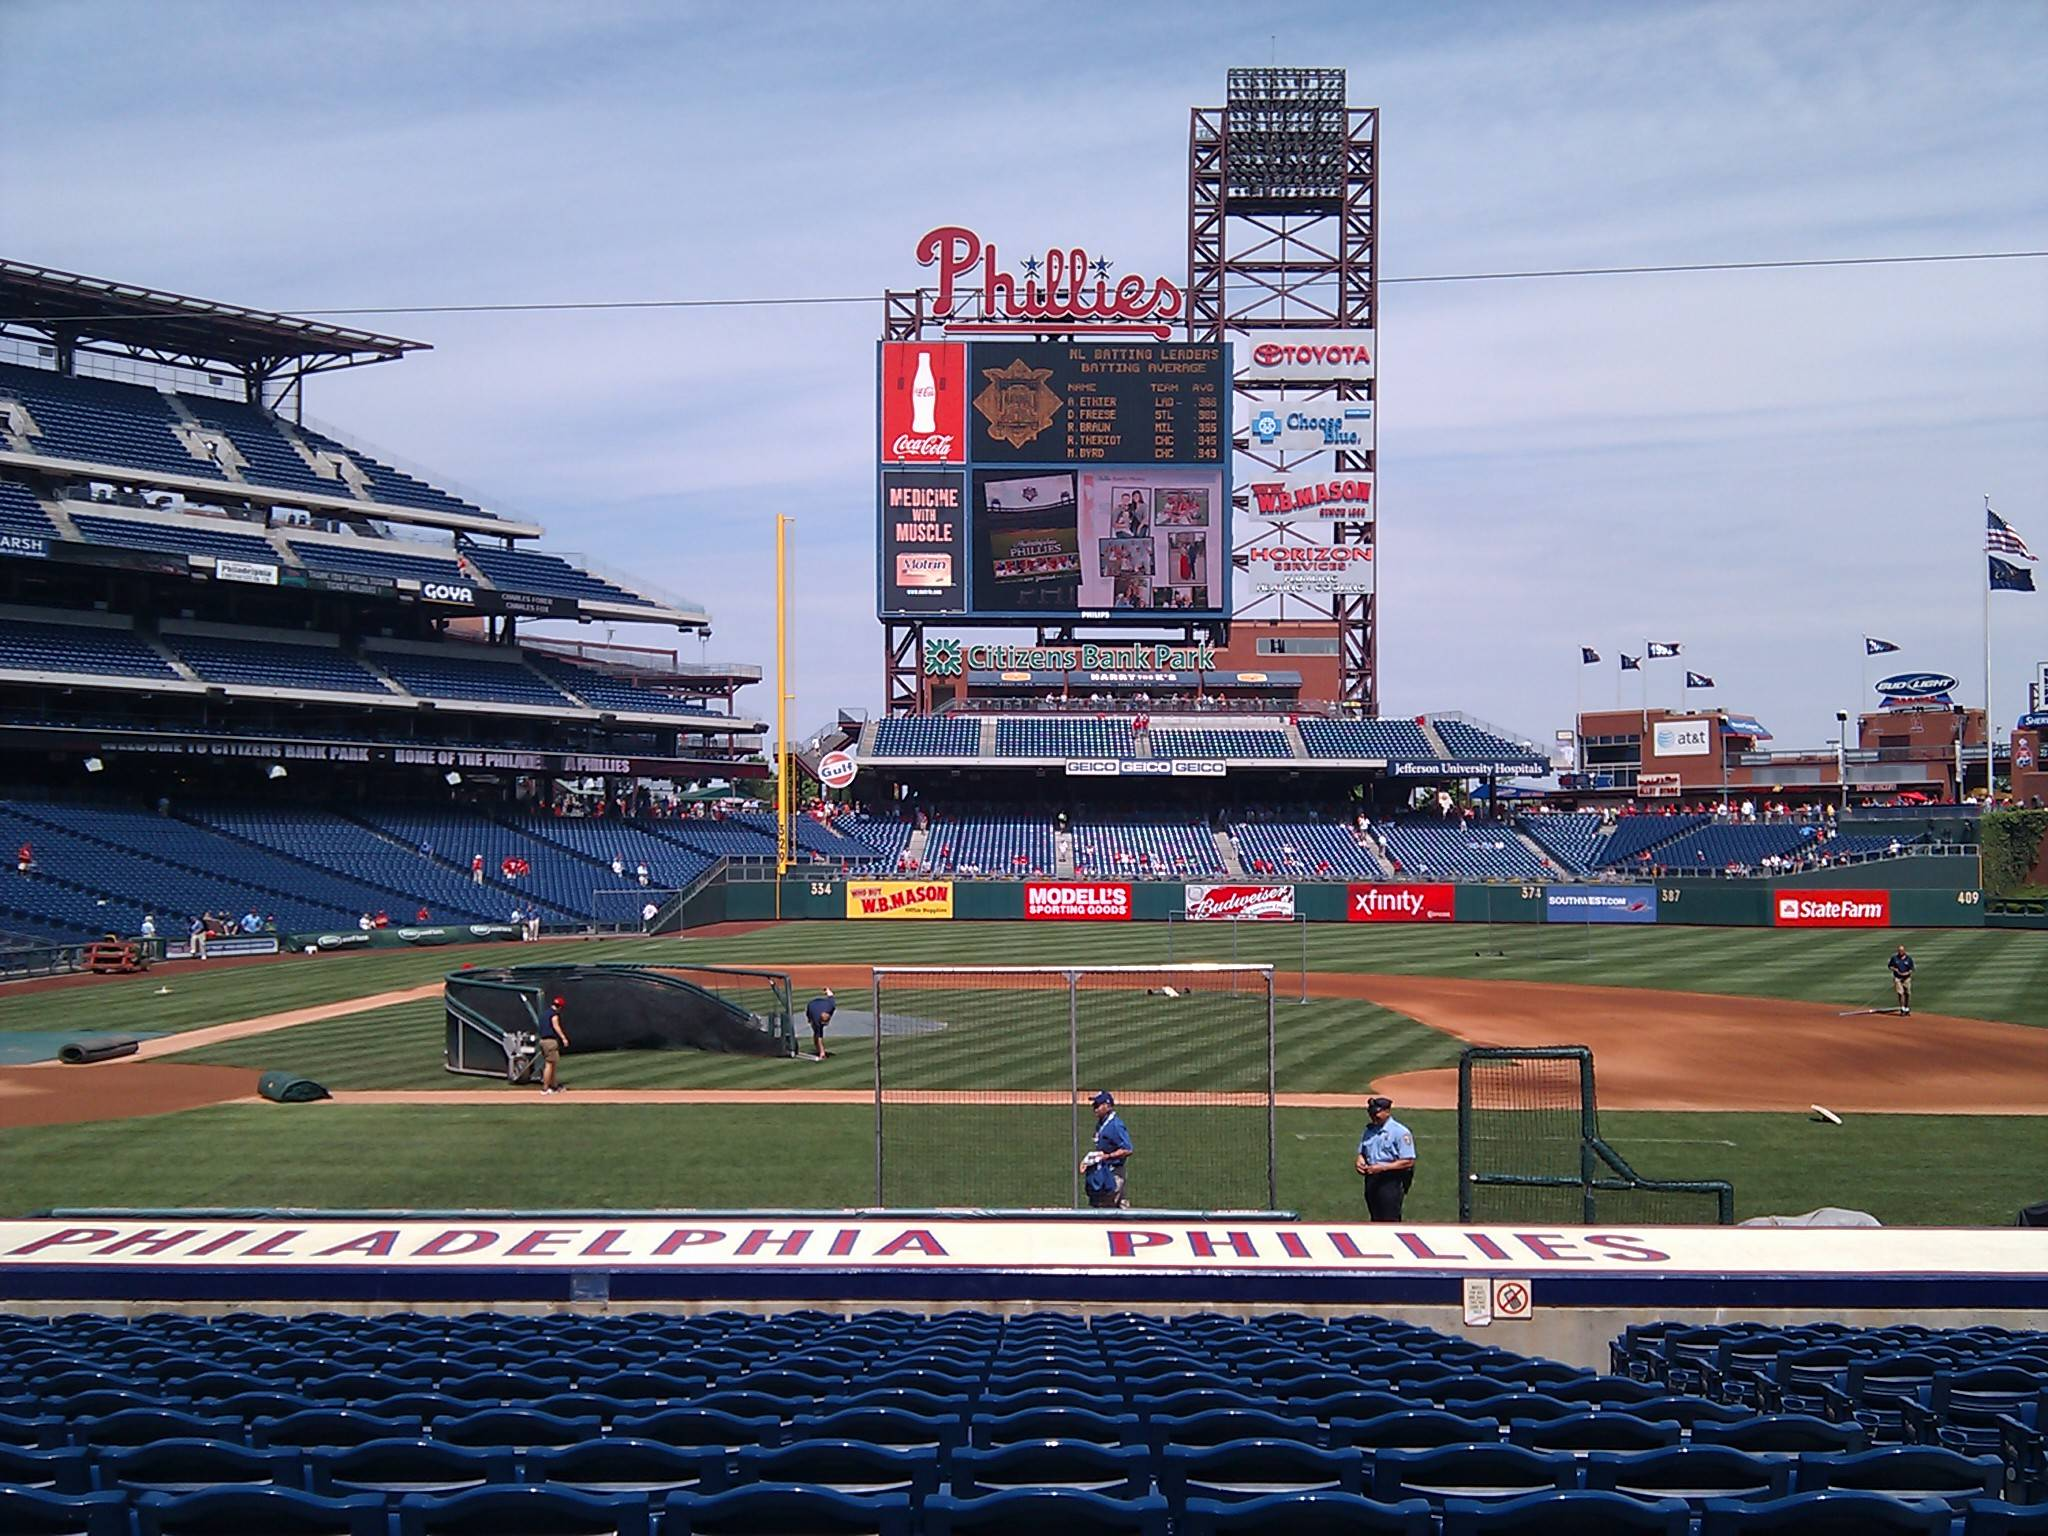 Citizens Bank Park Section 117 Row 16 Seat 5